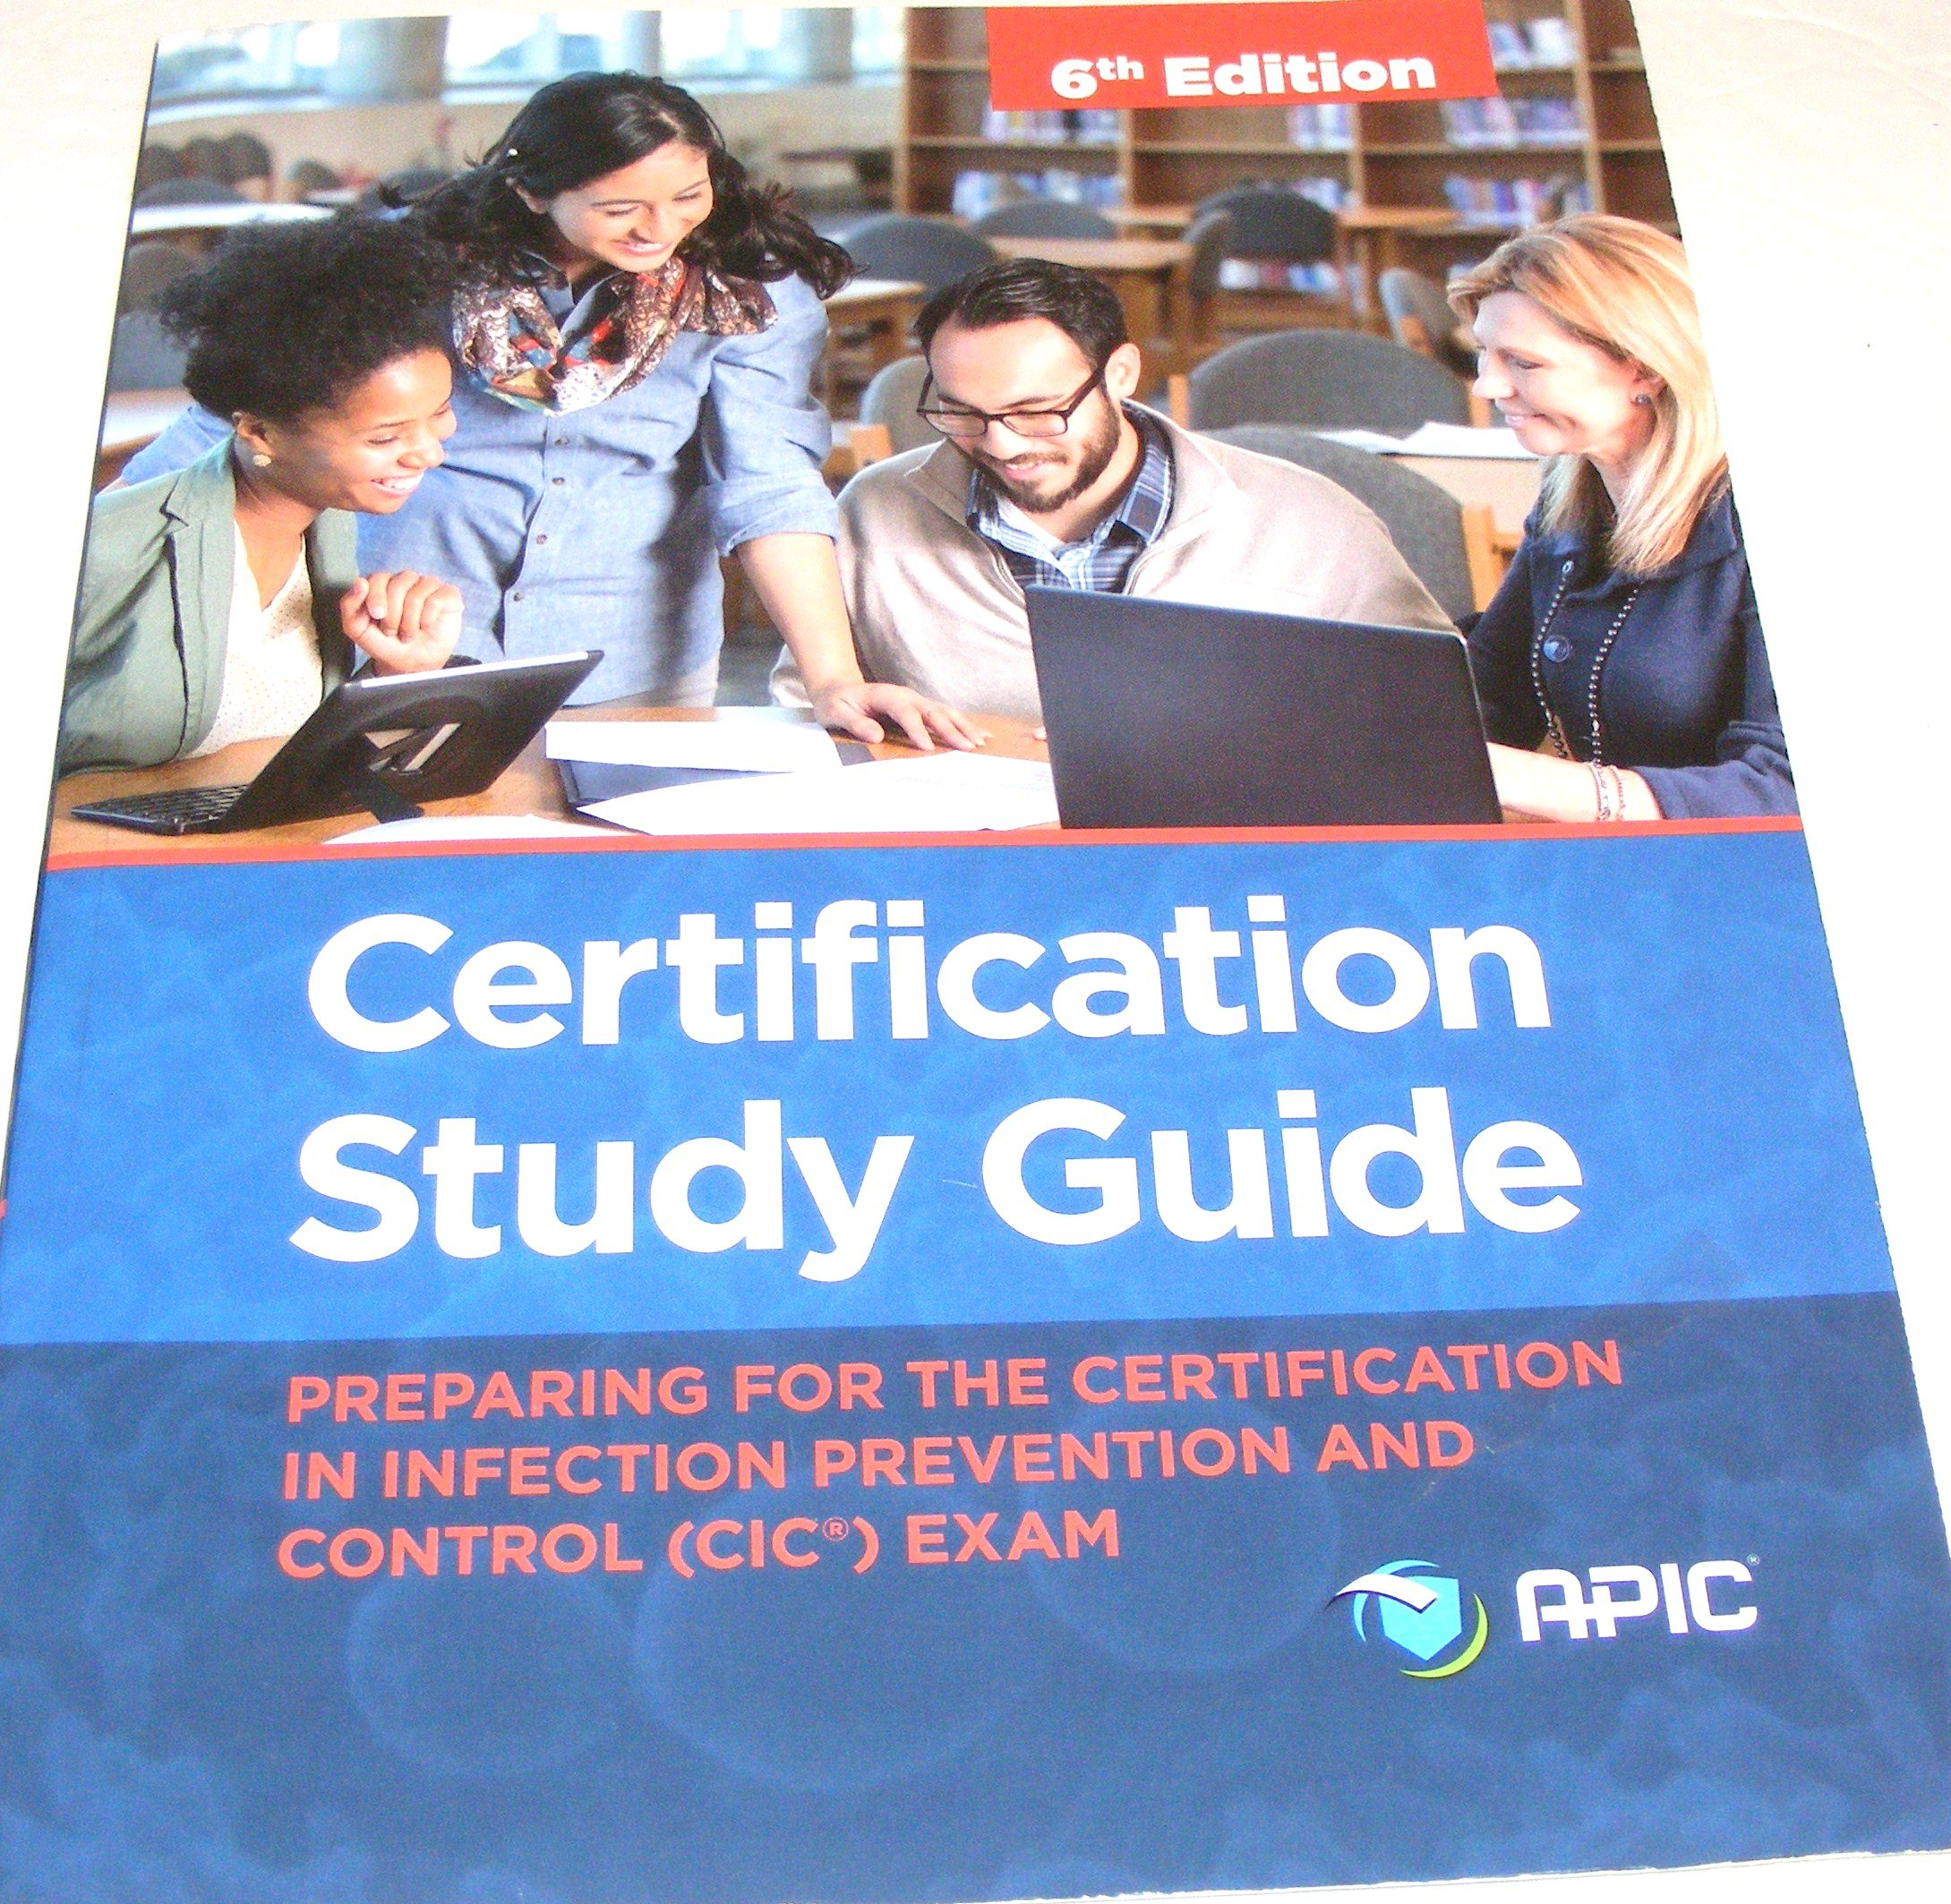 Certification Study Guide Preparing For The Certification In